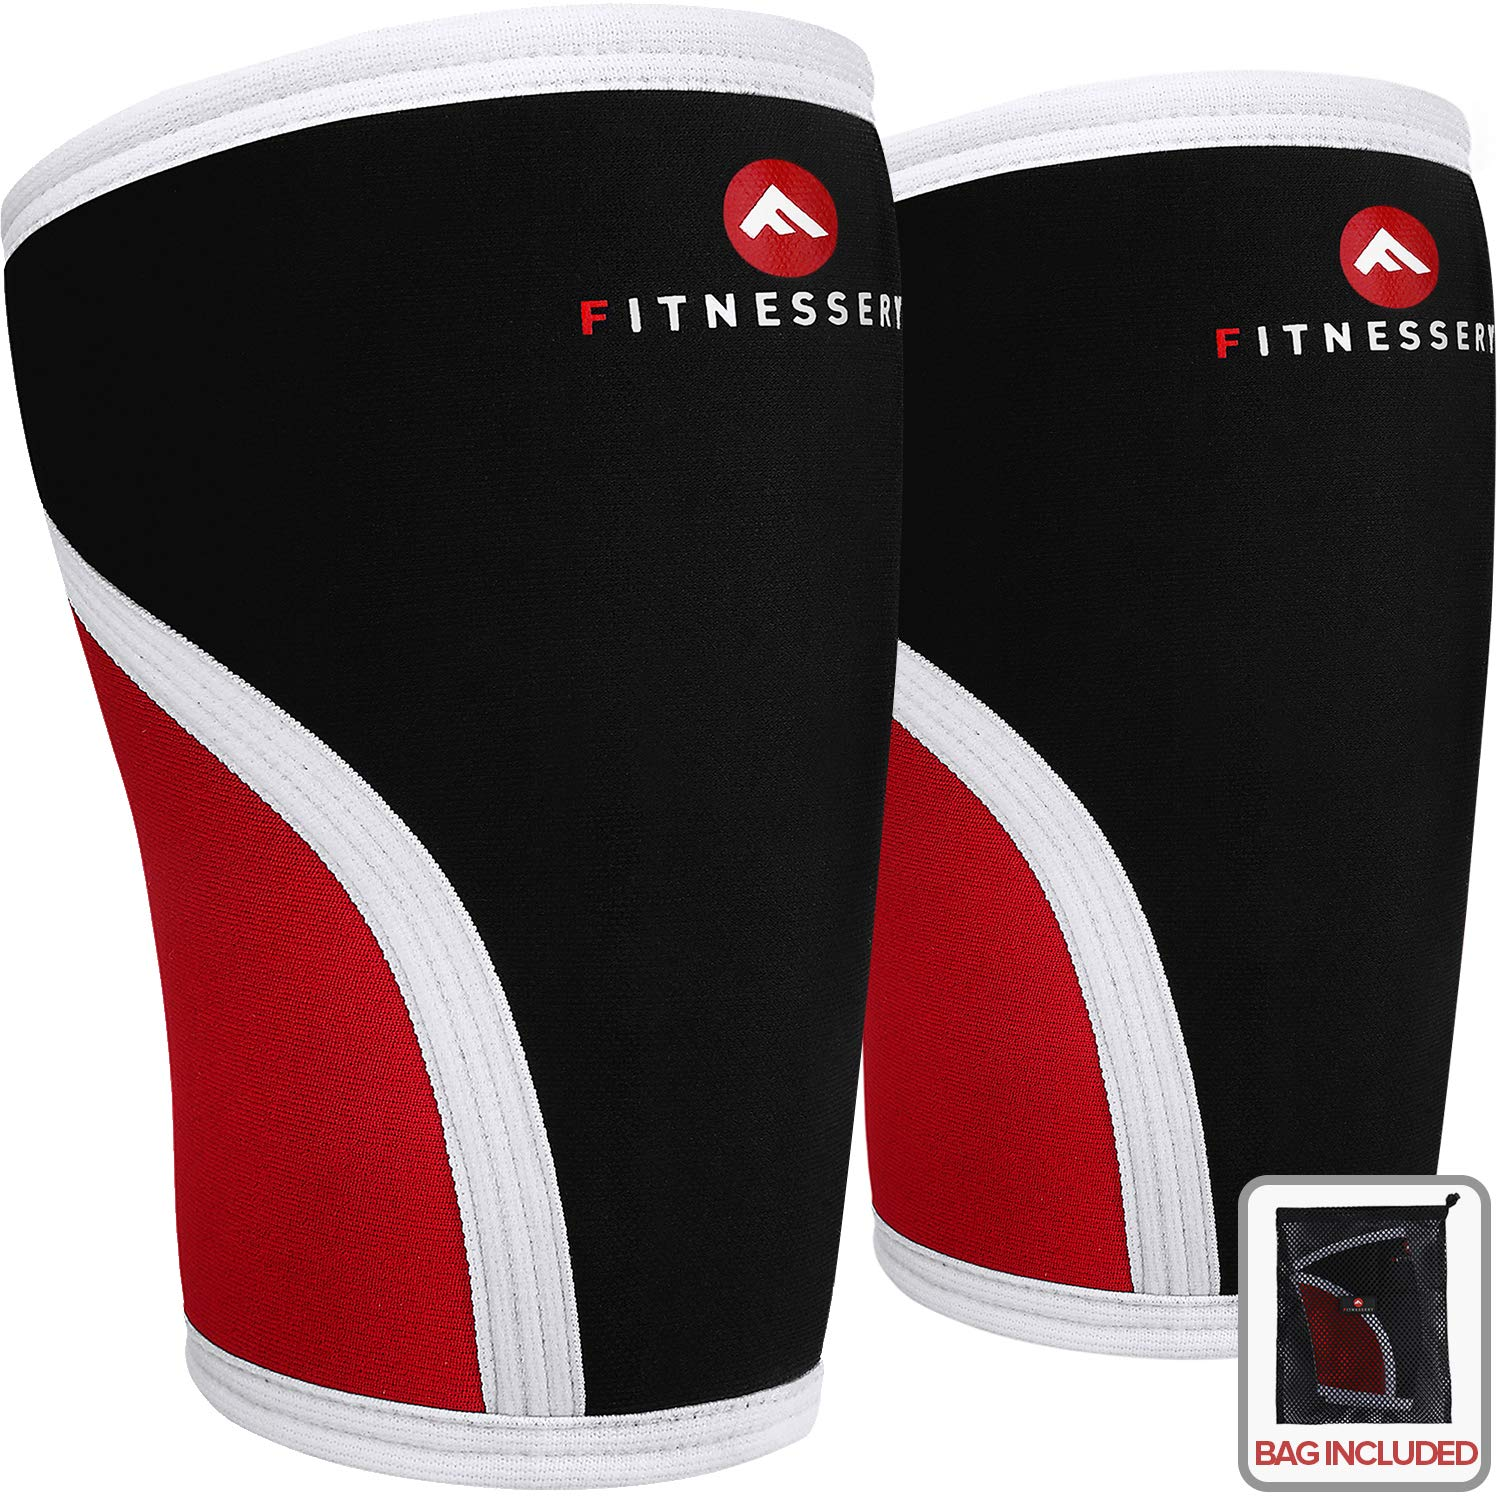 Fitnessery Knee Sleeves for Crossfit, Powerlifting, Weightlifting and Knee Support - 7mm Knee Sleeves - Knee Sleeves Crossfit - Knee Sleeves Powerlifting - Knee Compression Sleeve x 2 (Large)